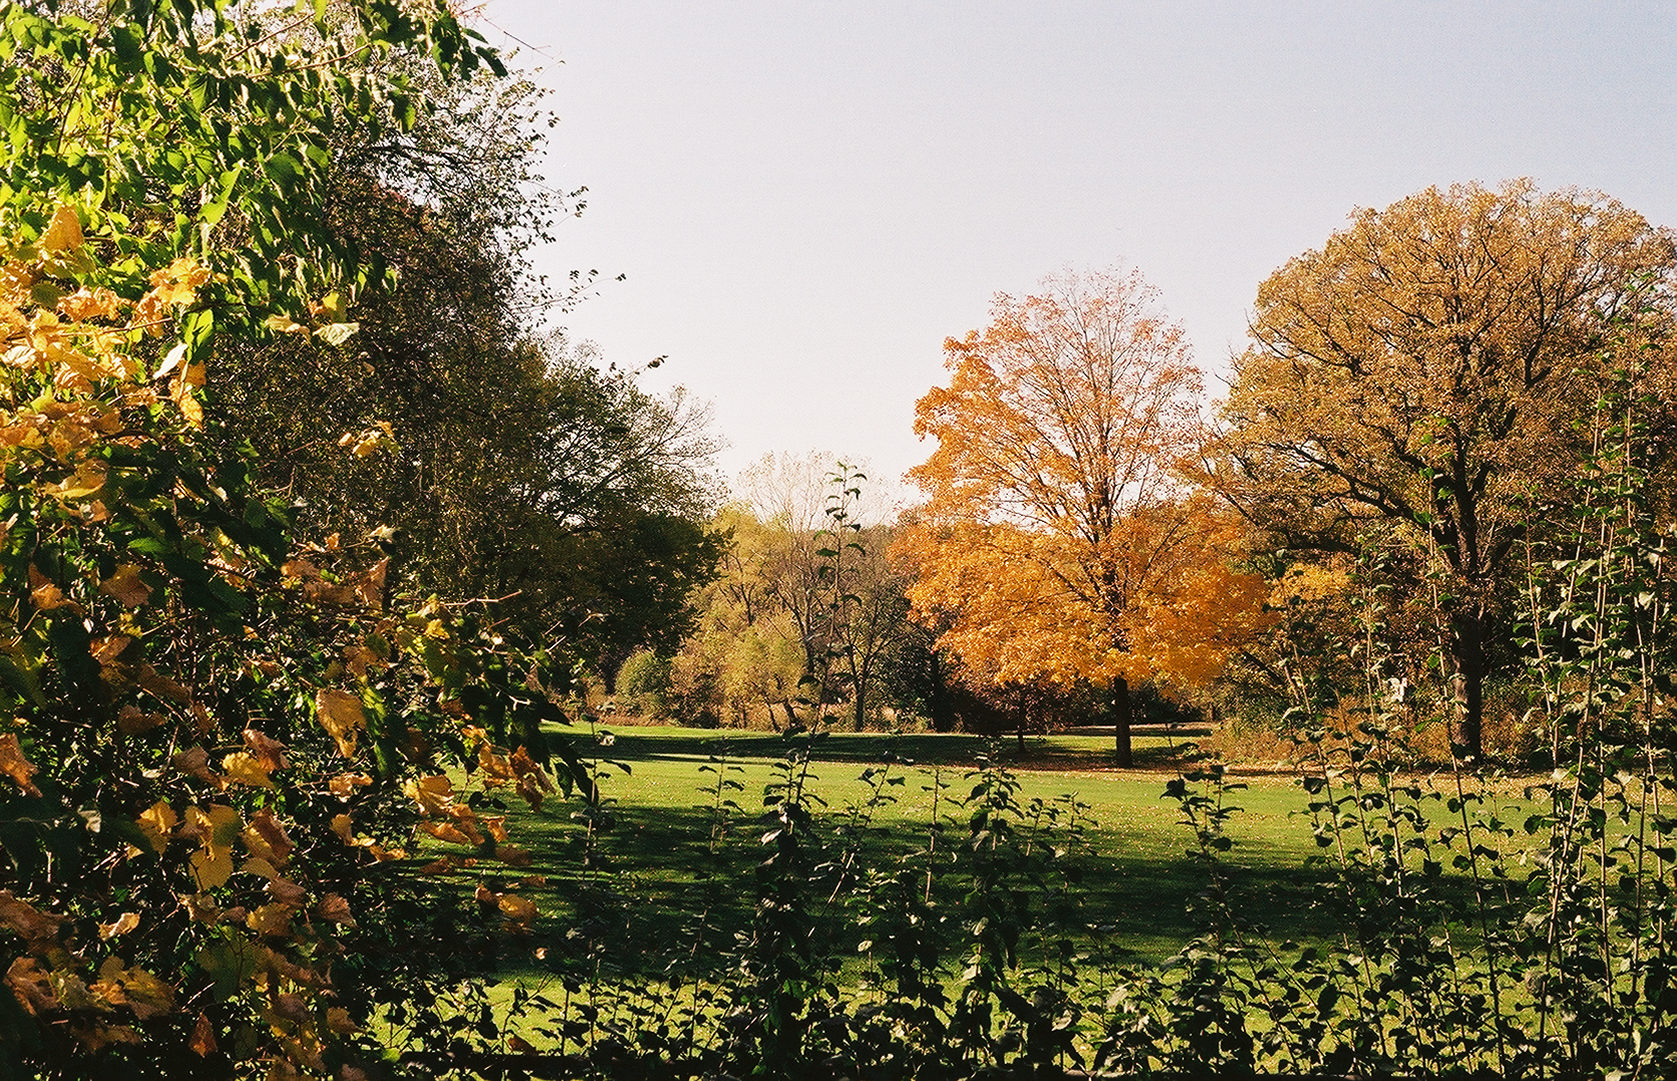 "Theodore Wirth Park. Image by <a href=""https://flic.kr/p/zywraX"" target=""_blank"">Passej/flickr</a>"